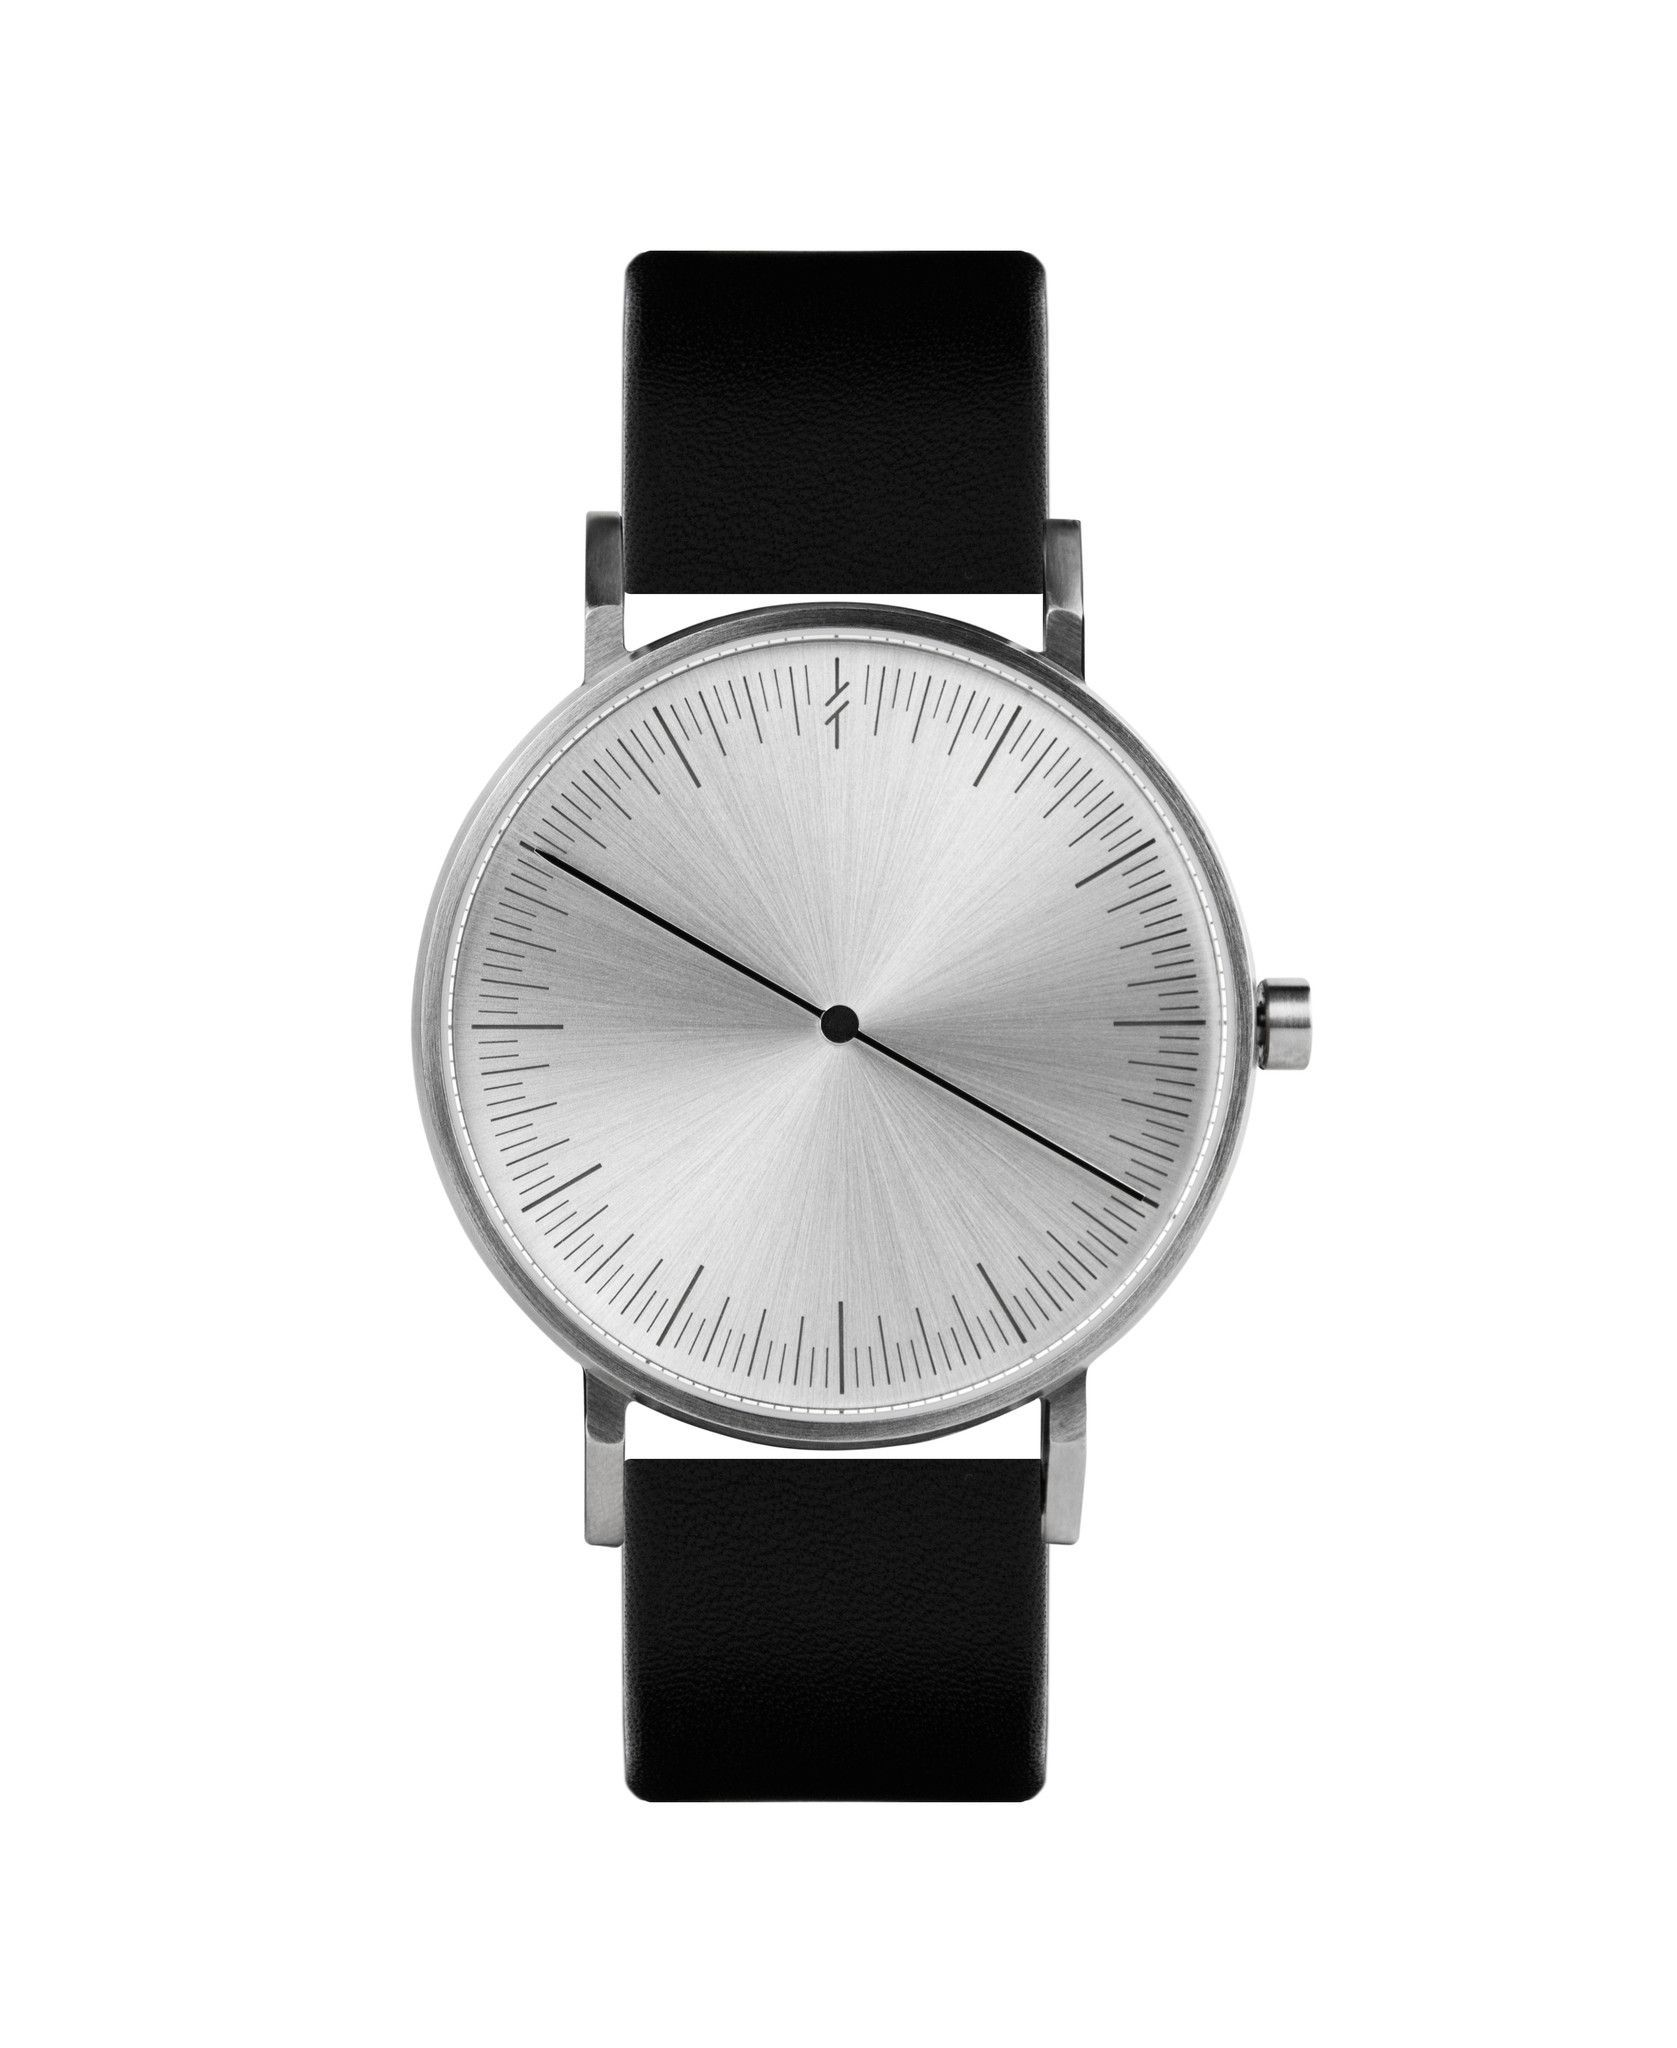 Simpl Watch Silver Black | 101.Watch Store